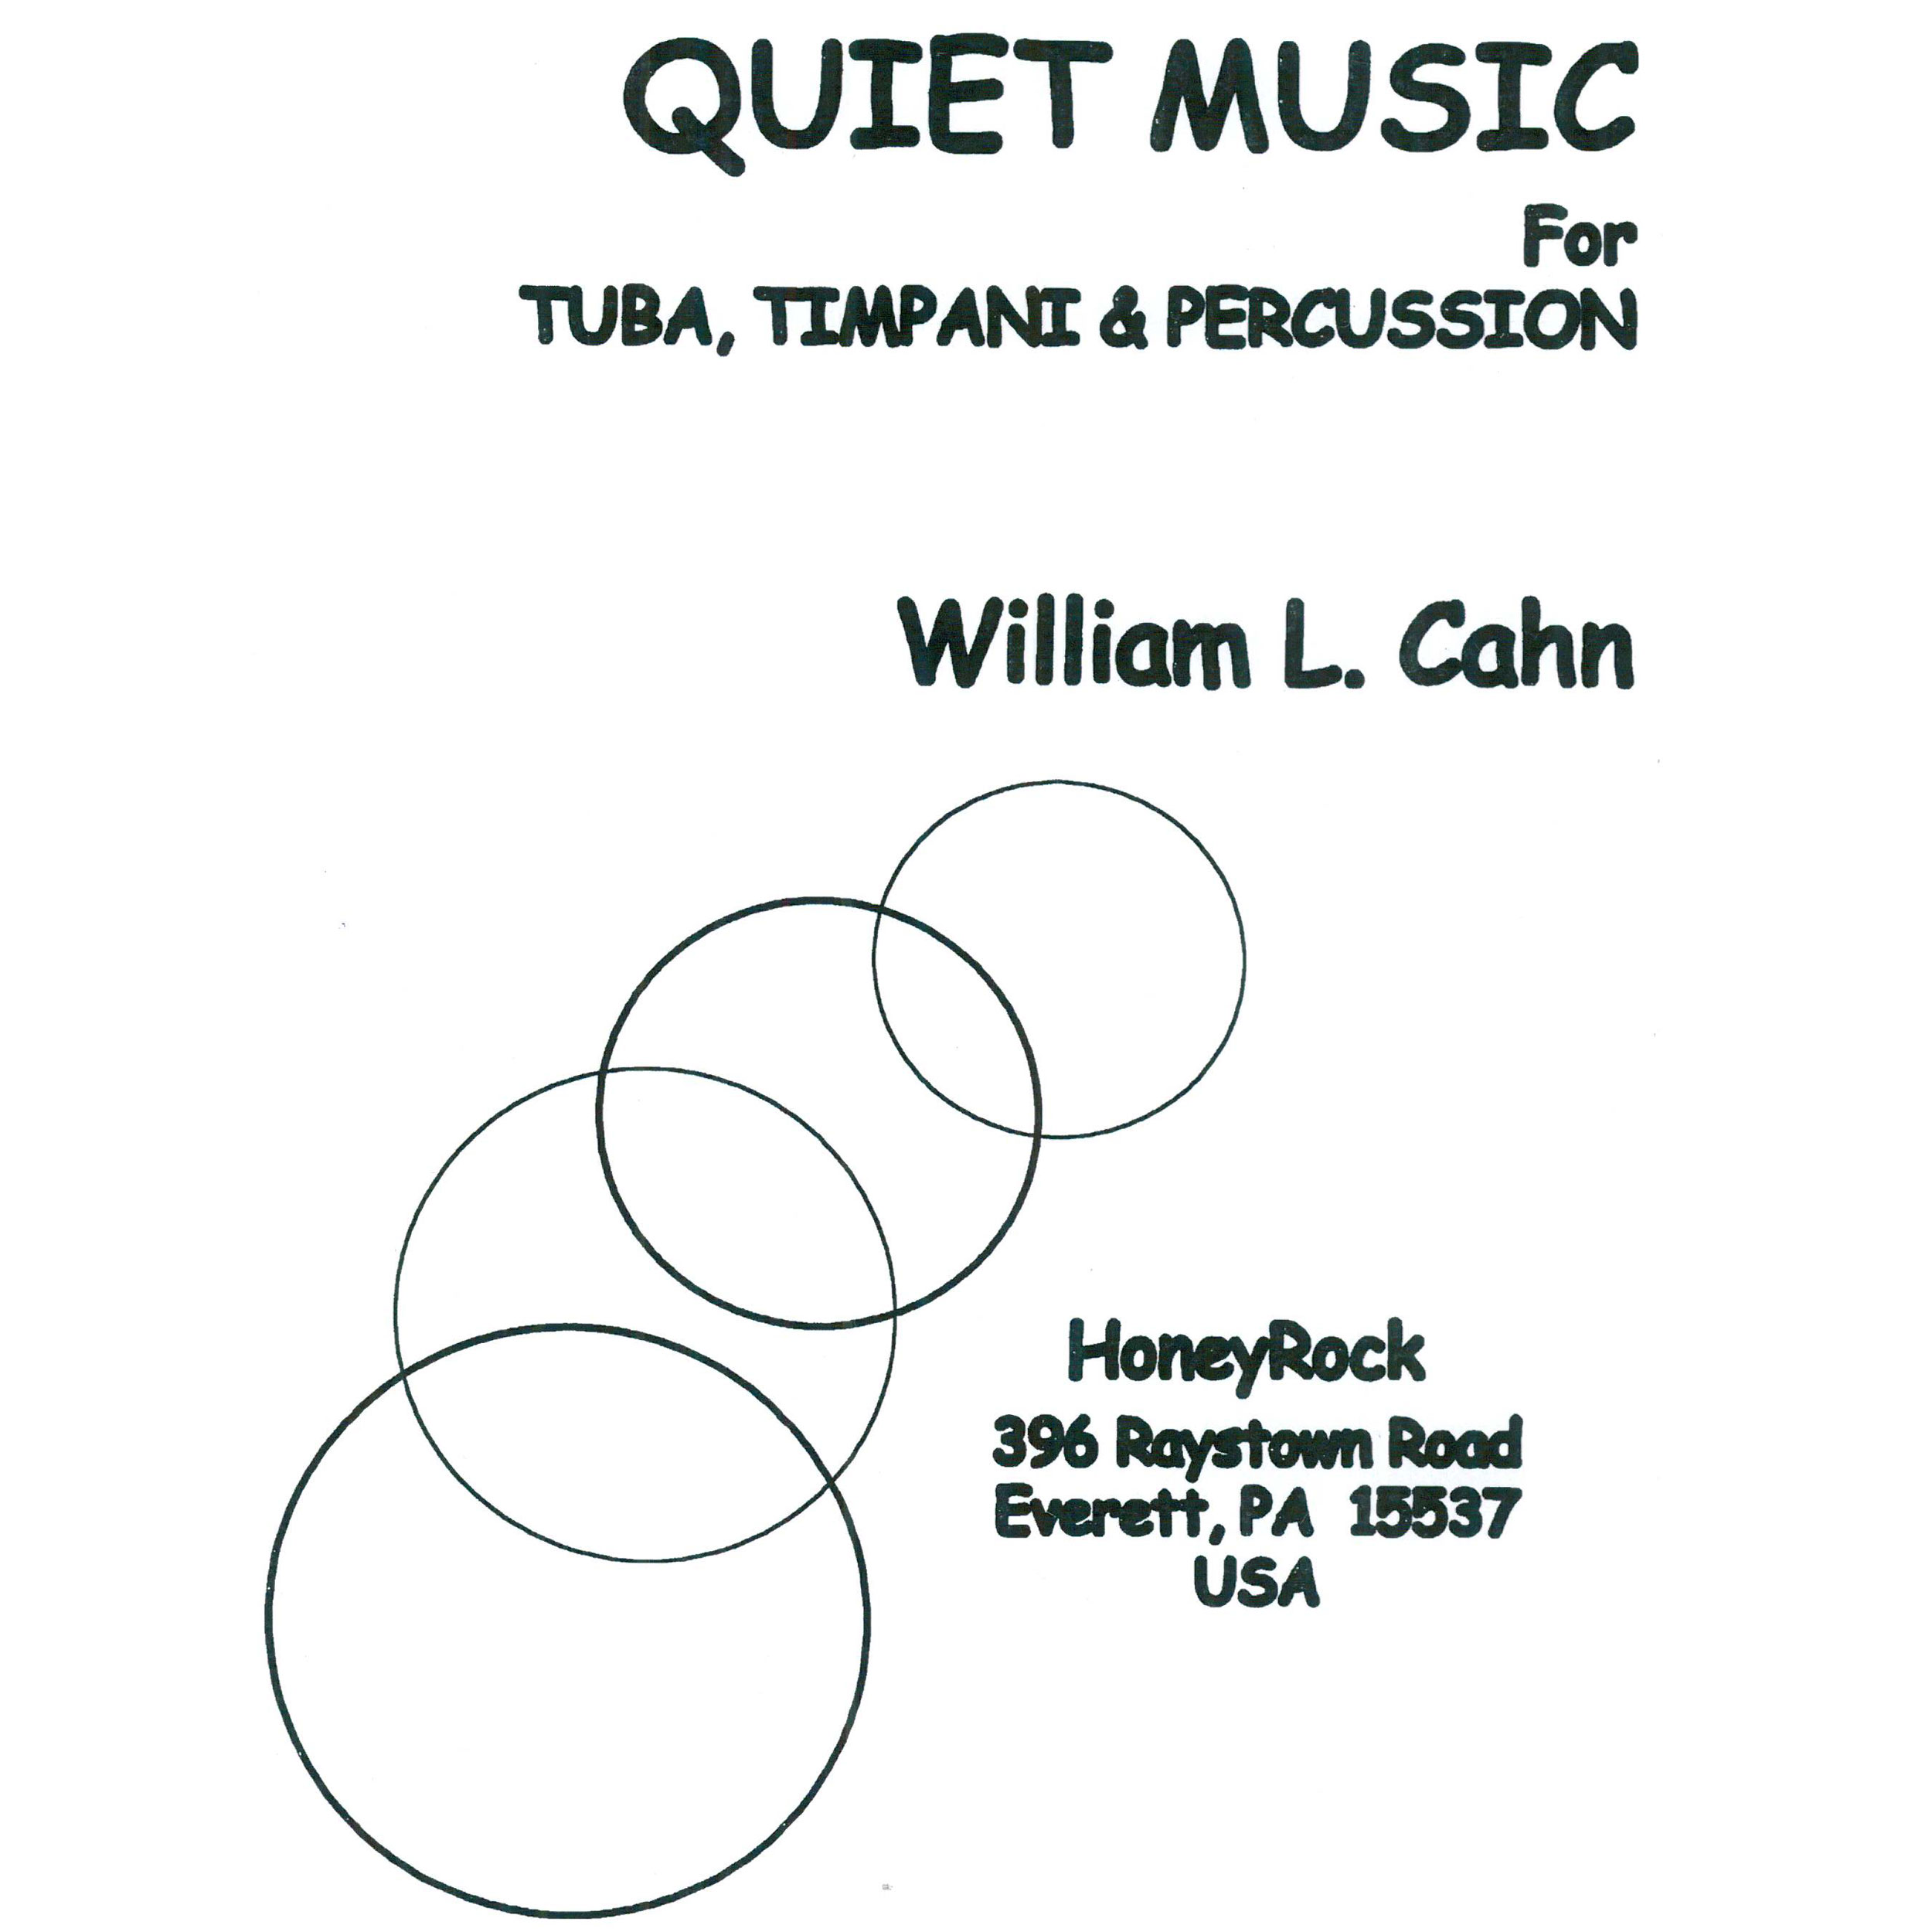 Quiet Music by William Cahn